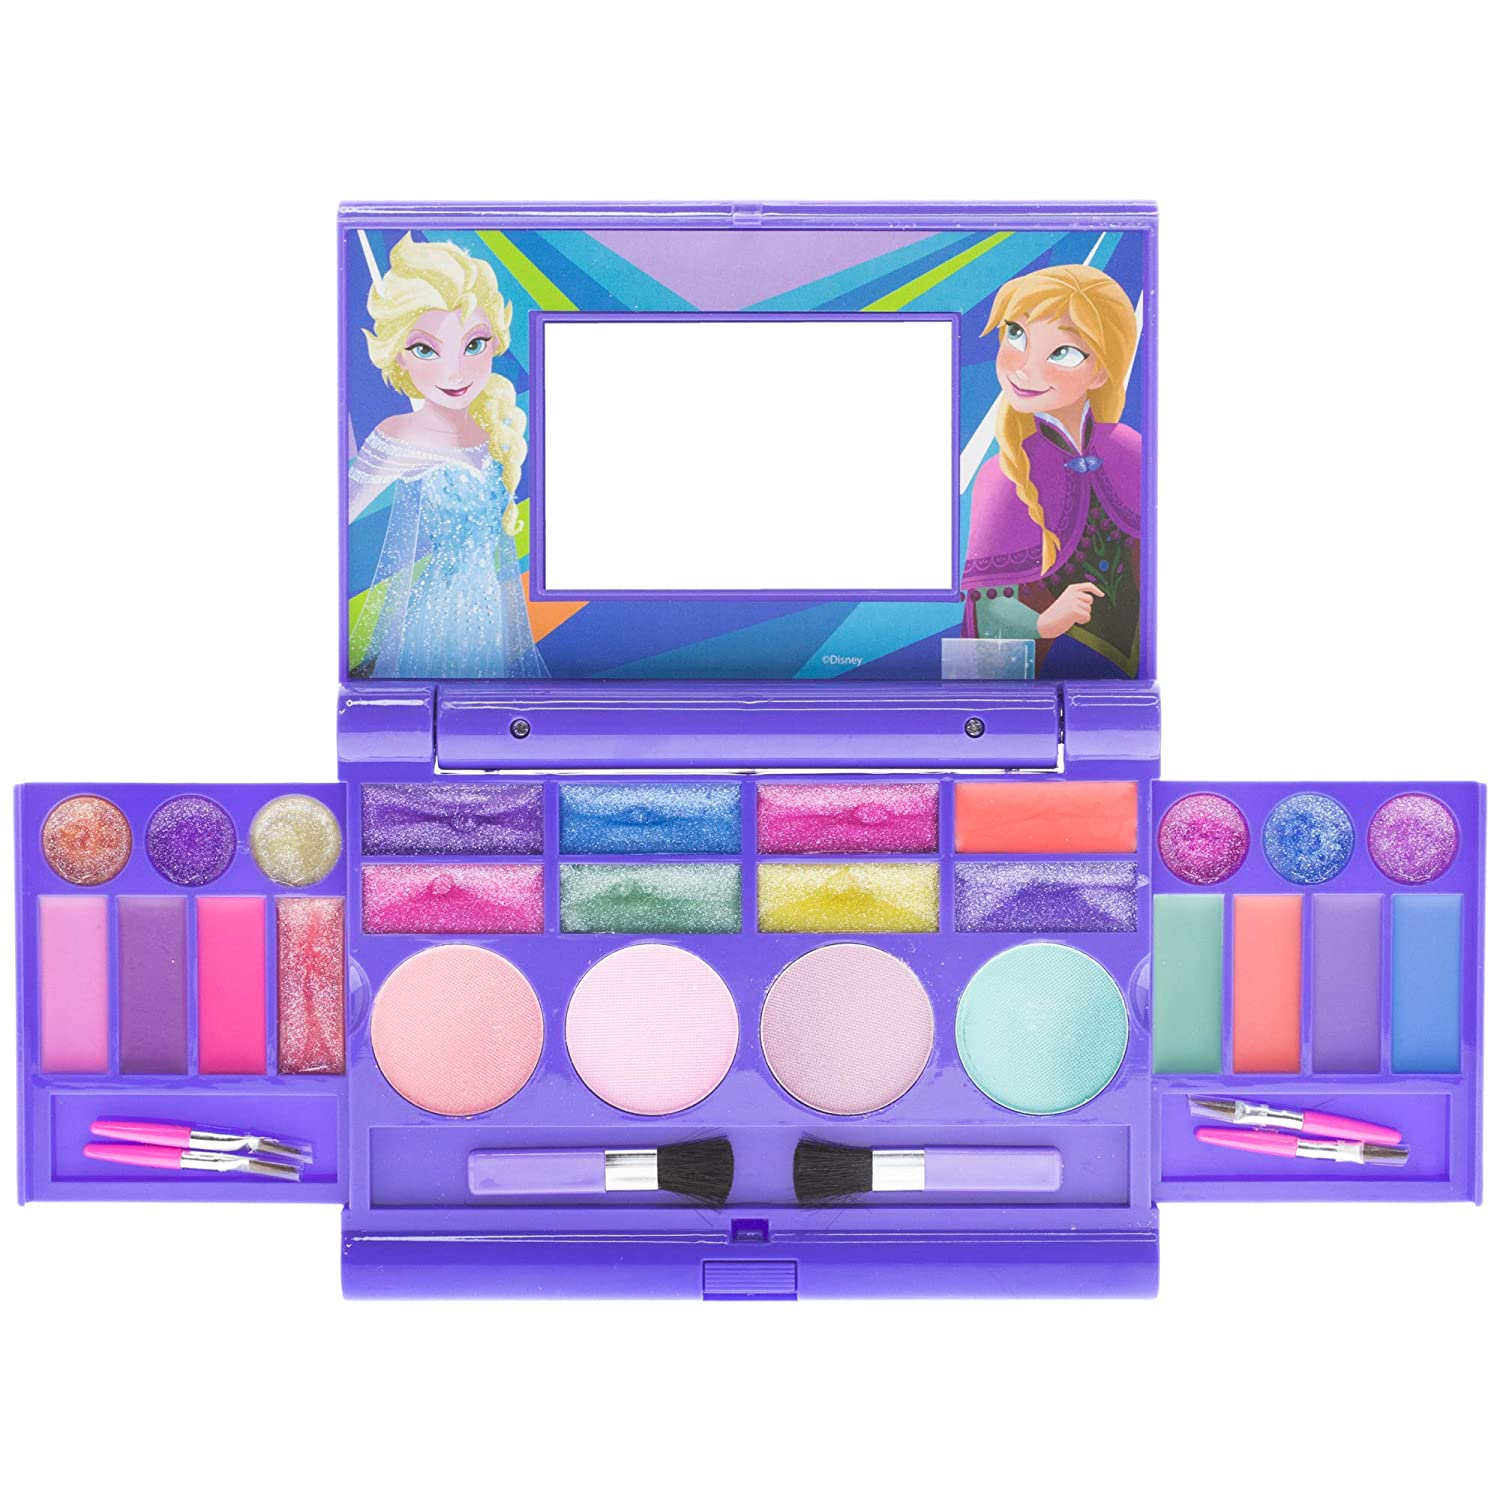 Townley Girl Disney Frozen Elsa and Anna Beauty Kit, Kids Washable Lip Gloss Compact Set (Frozen...